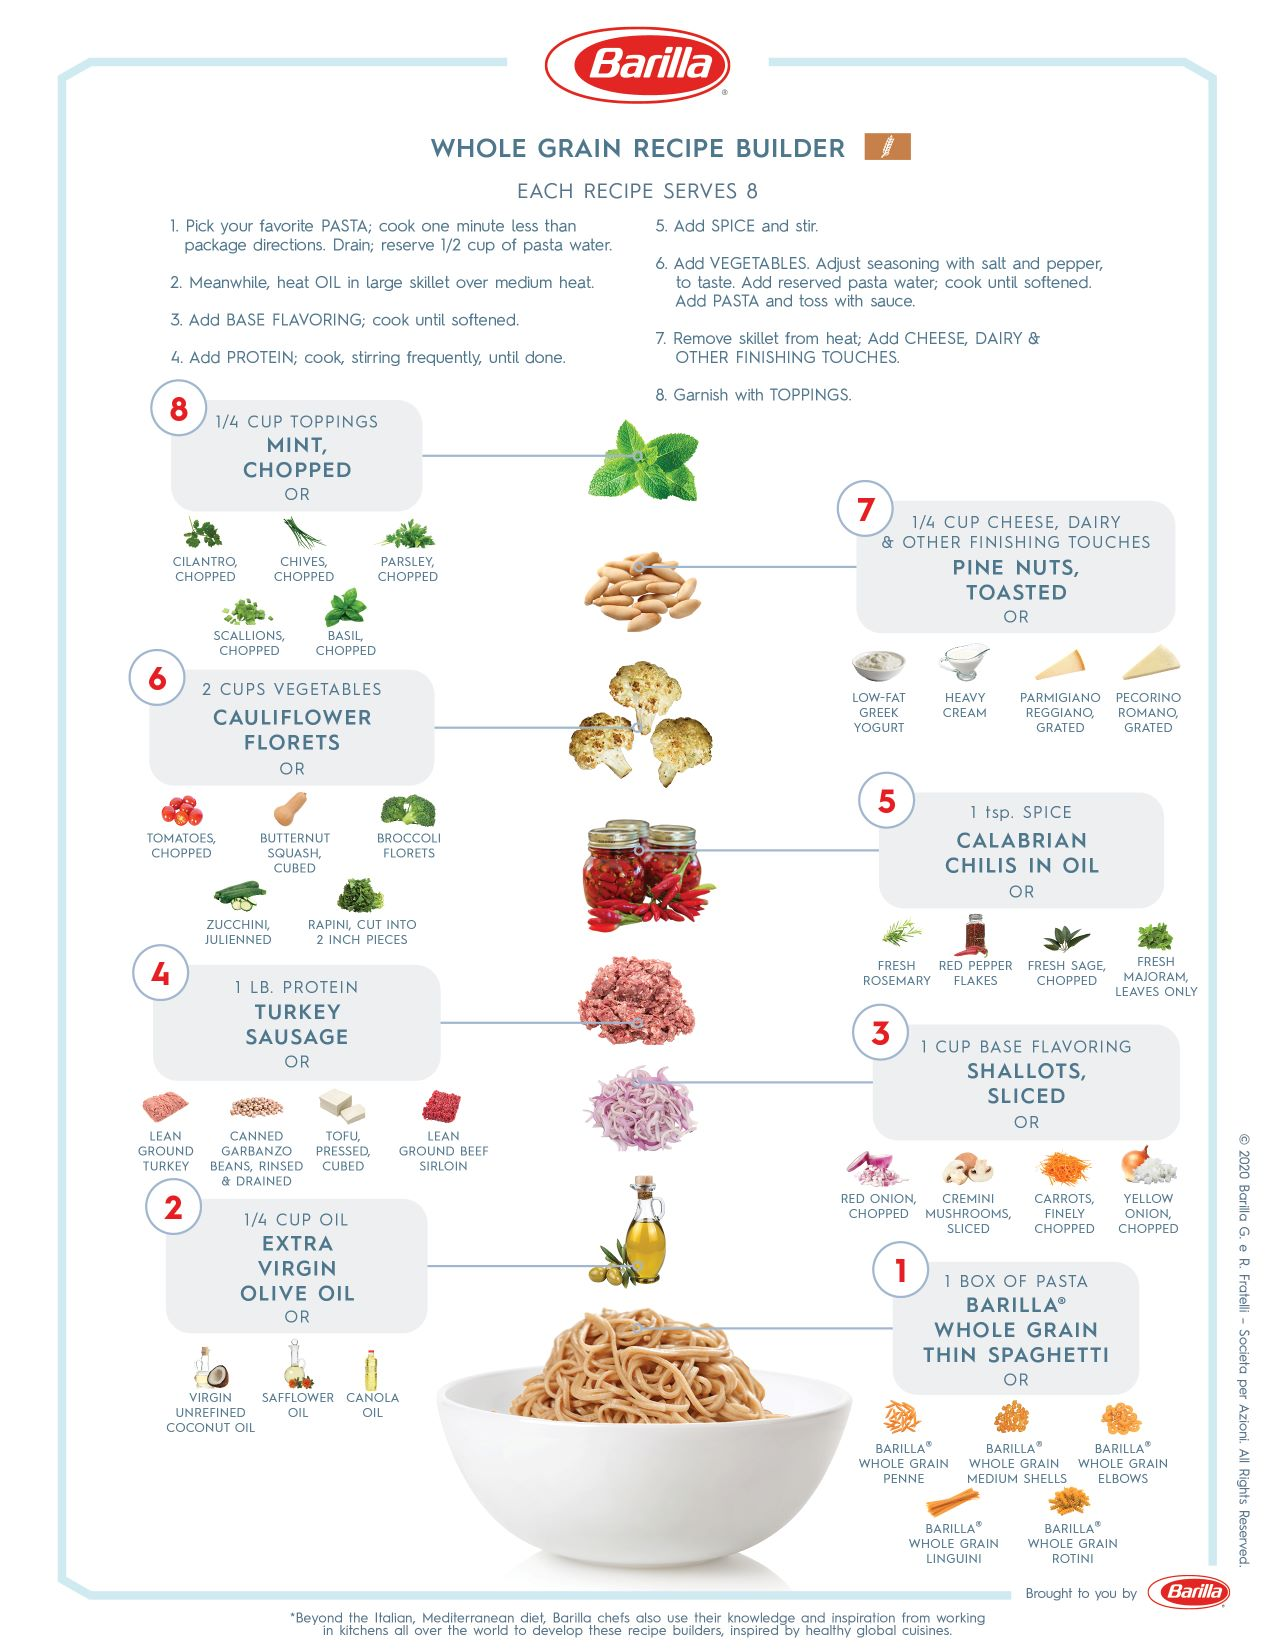 Recipe Builder inspired by the flavors of Whole Grains